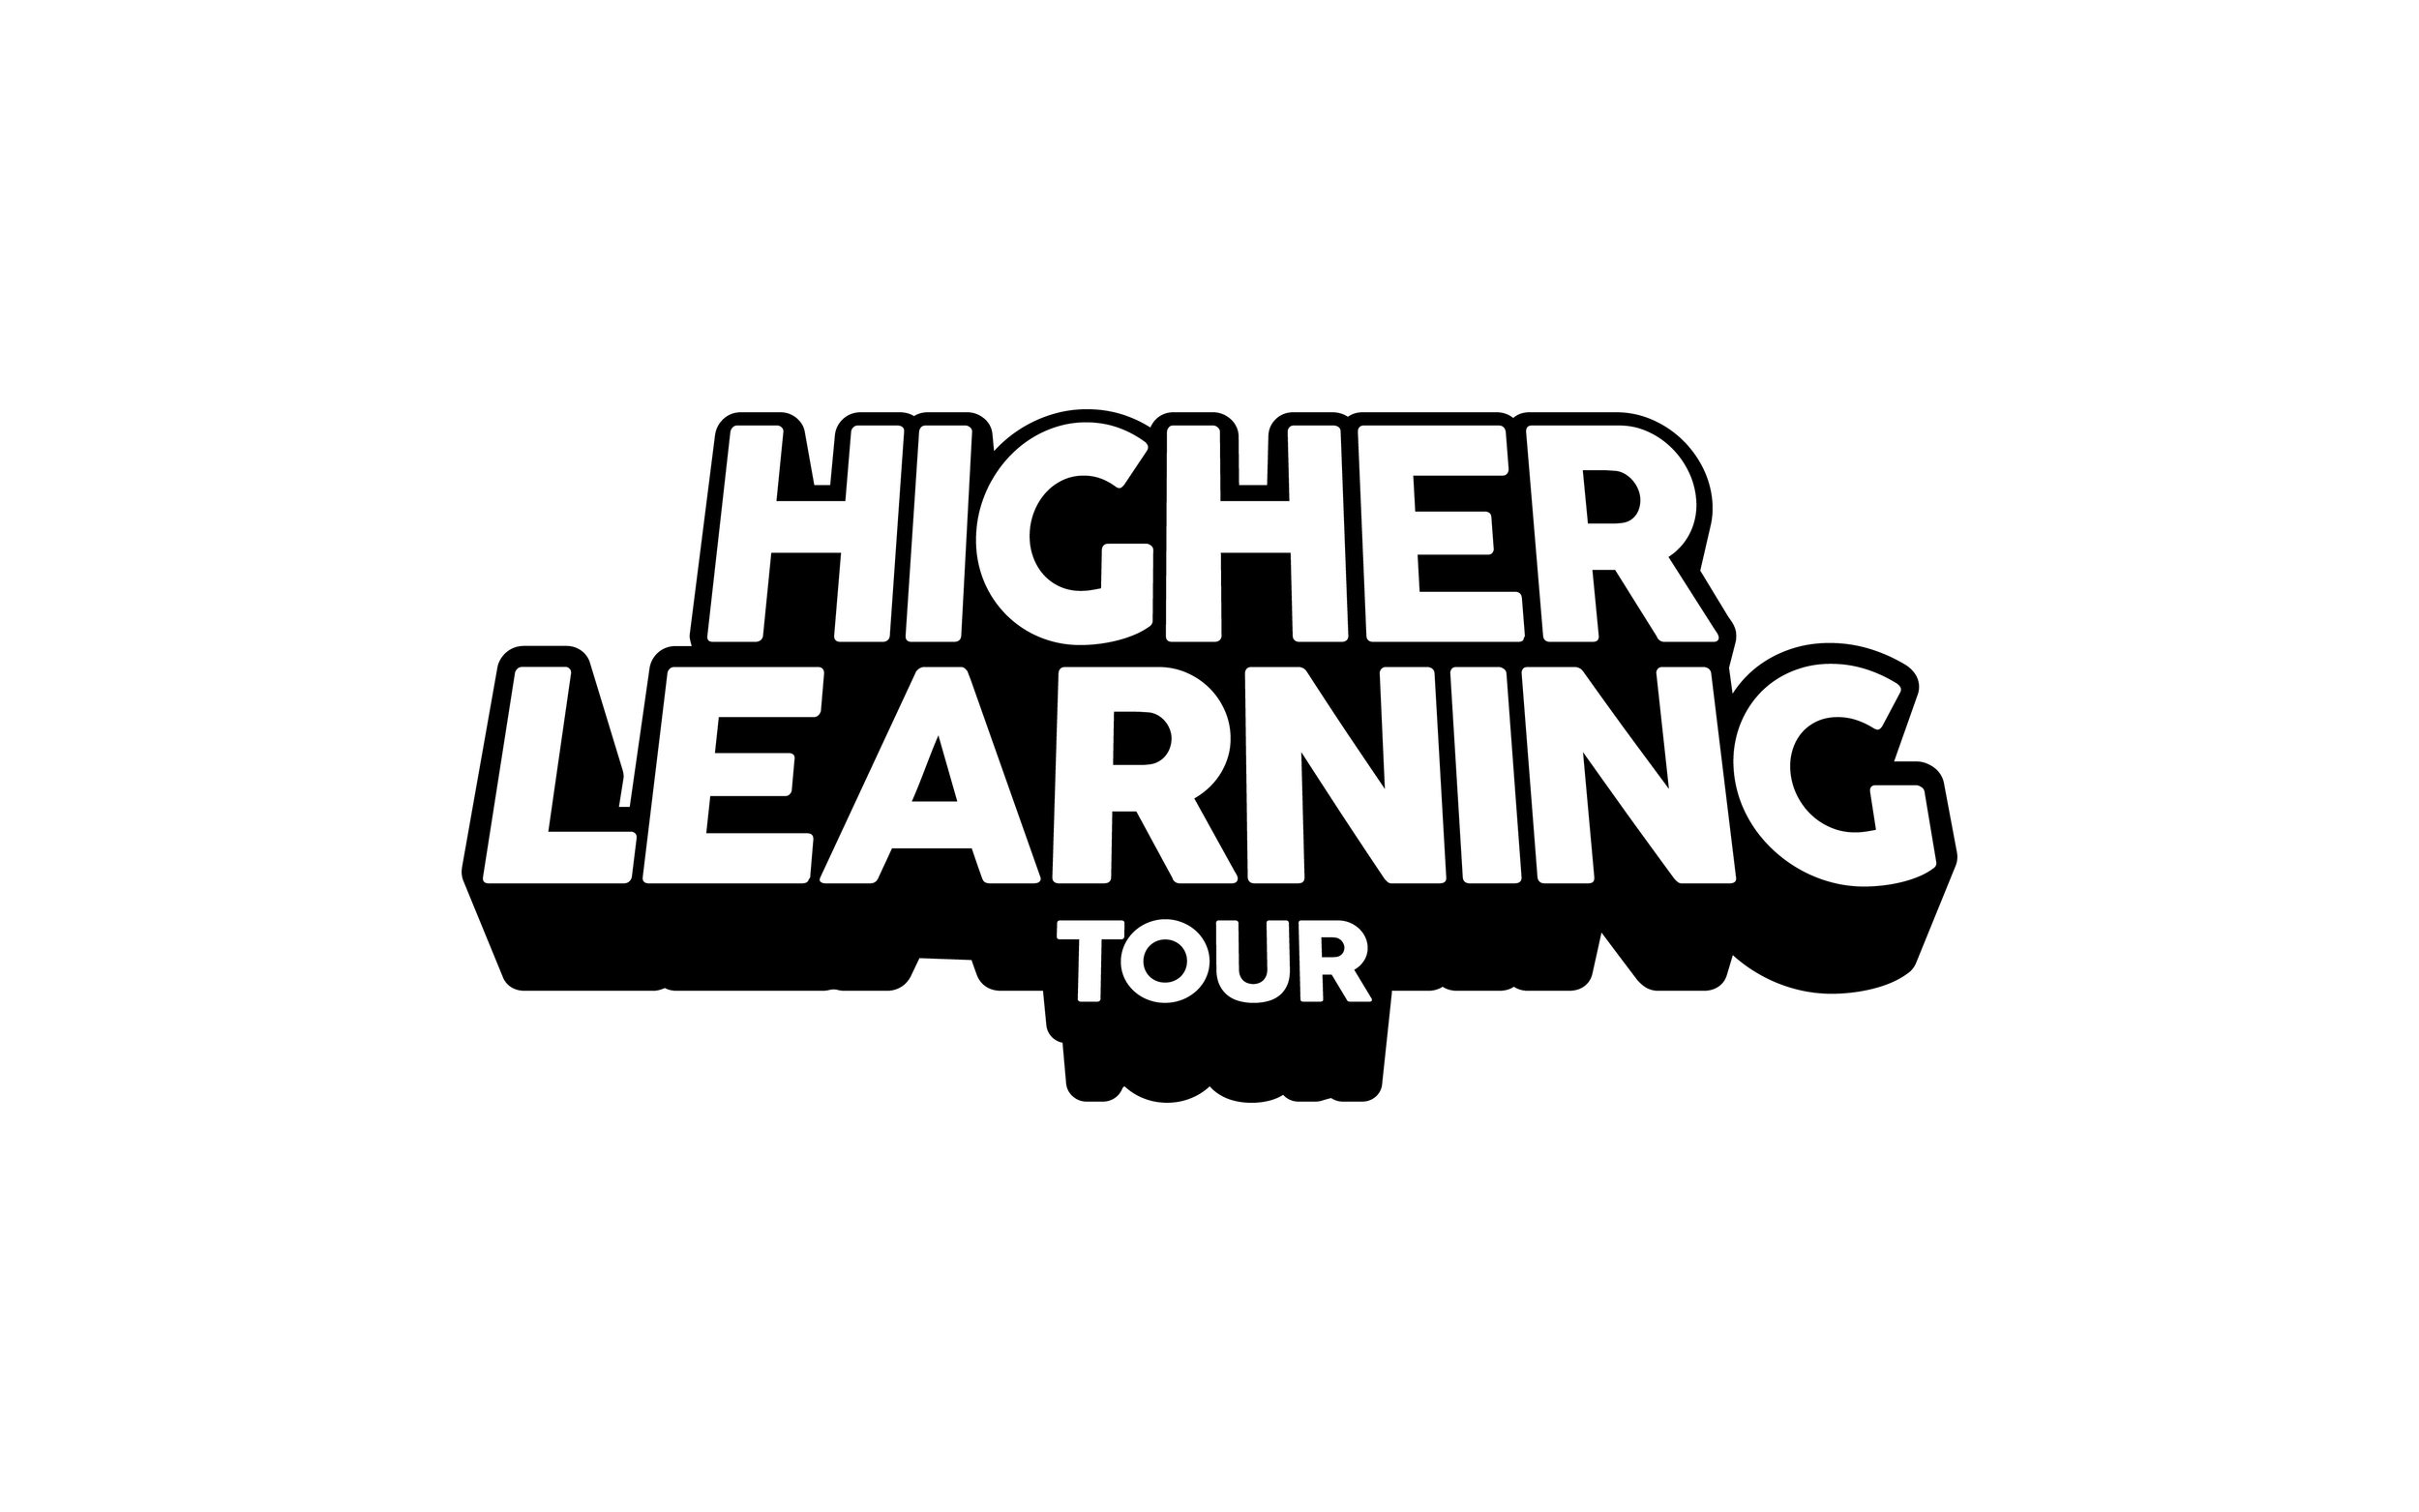 Higher Learning Logo